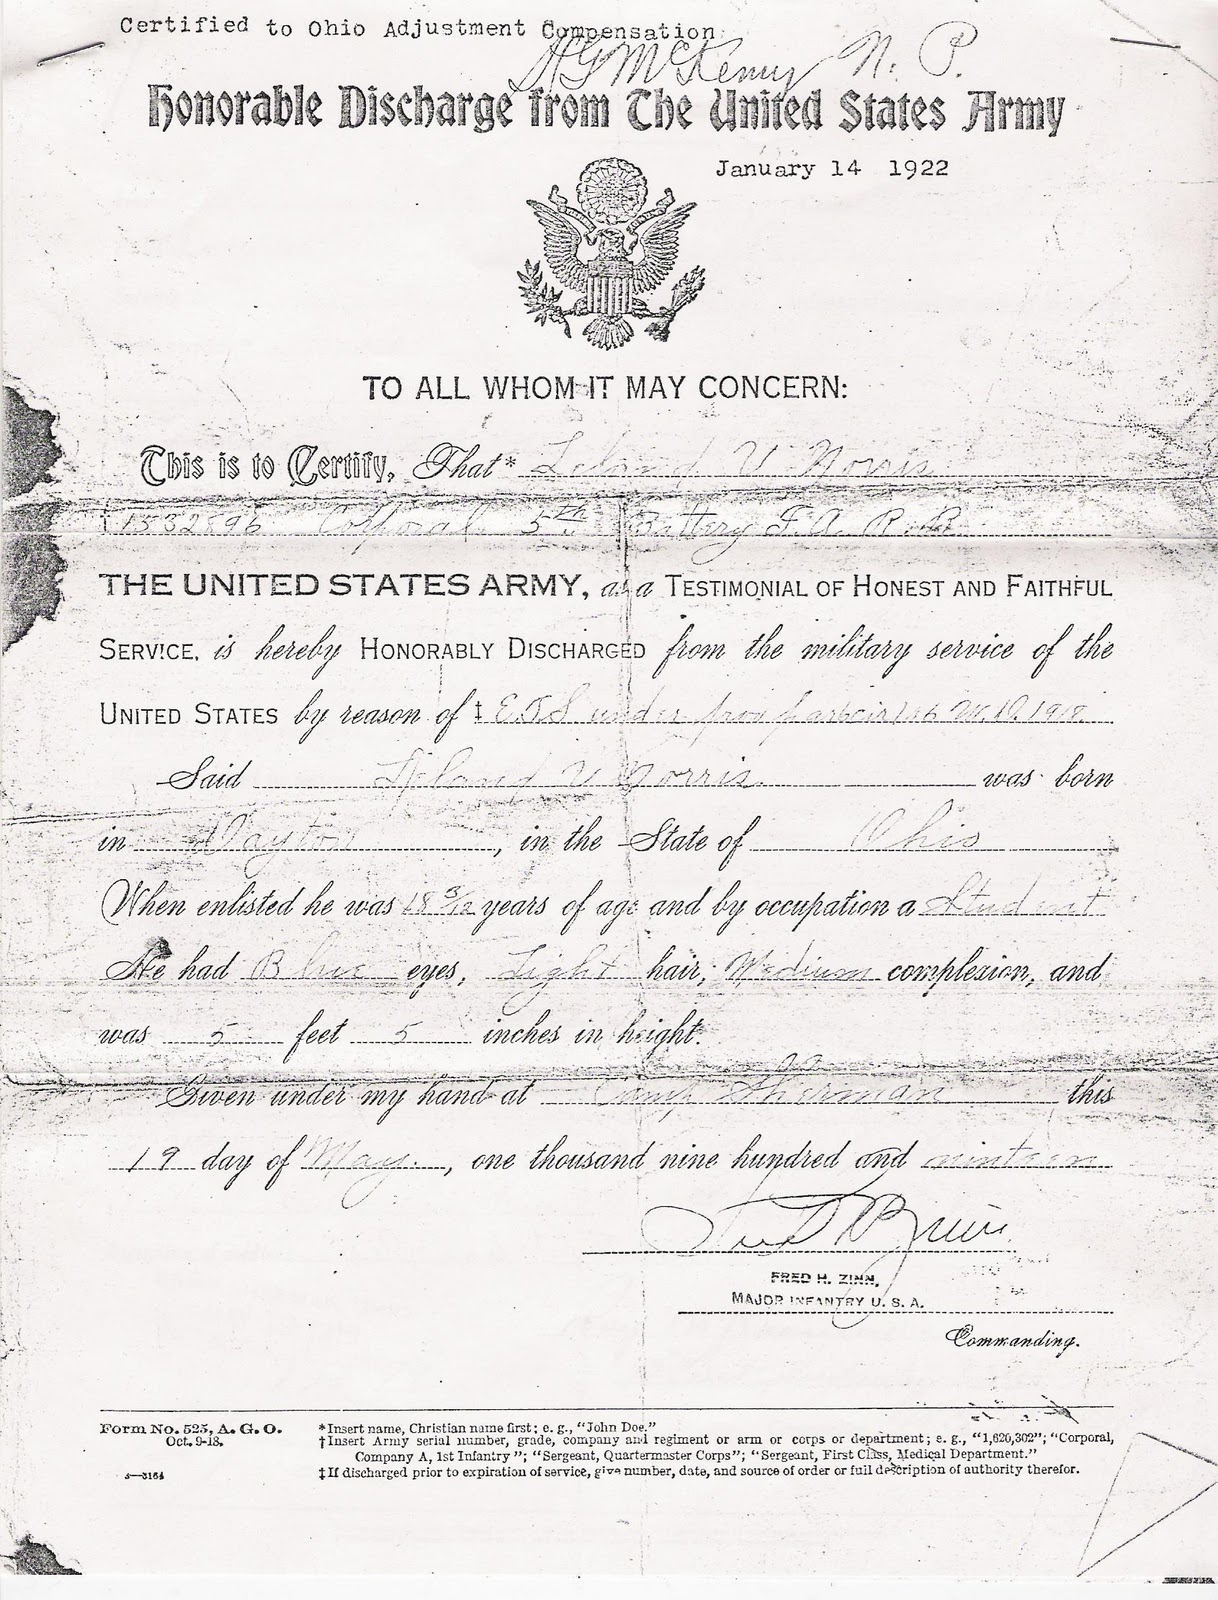 military discharge papers Request for military discharge papers (ors 408420) i am requesting access to and _____ regular / certified copy(ies) of the (number of copies).